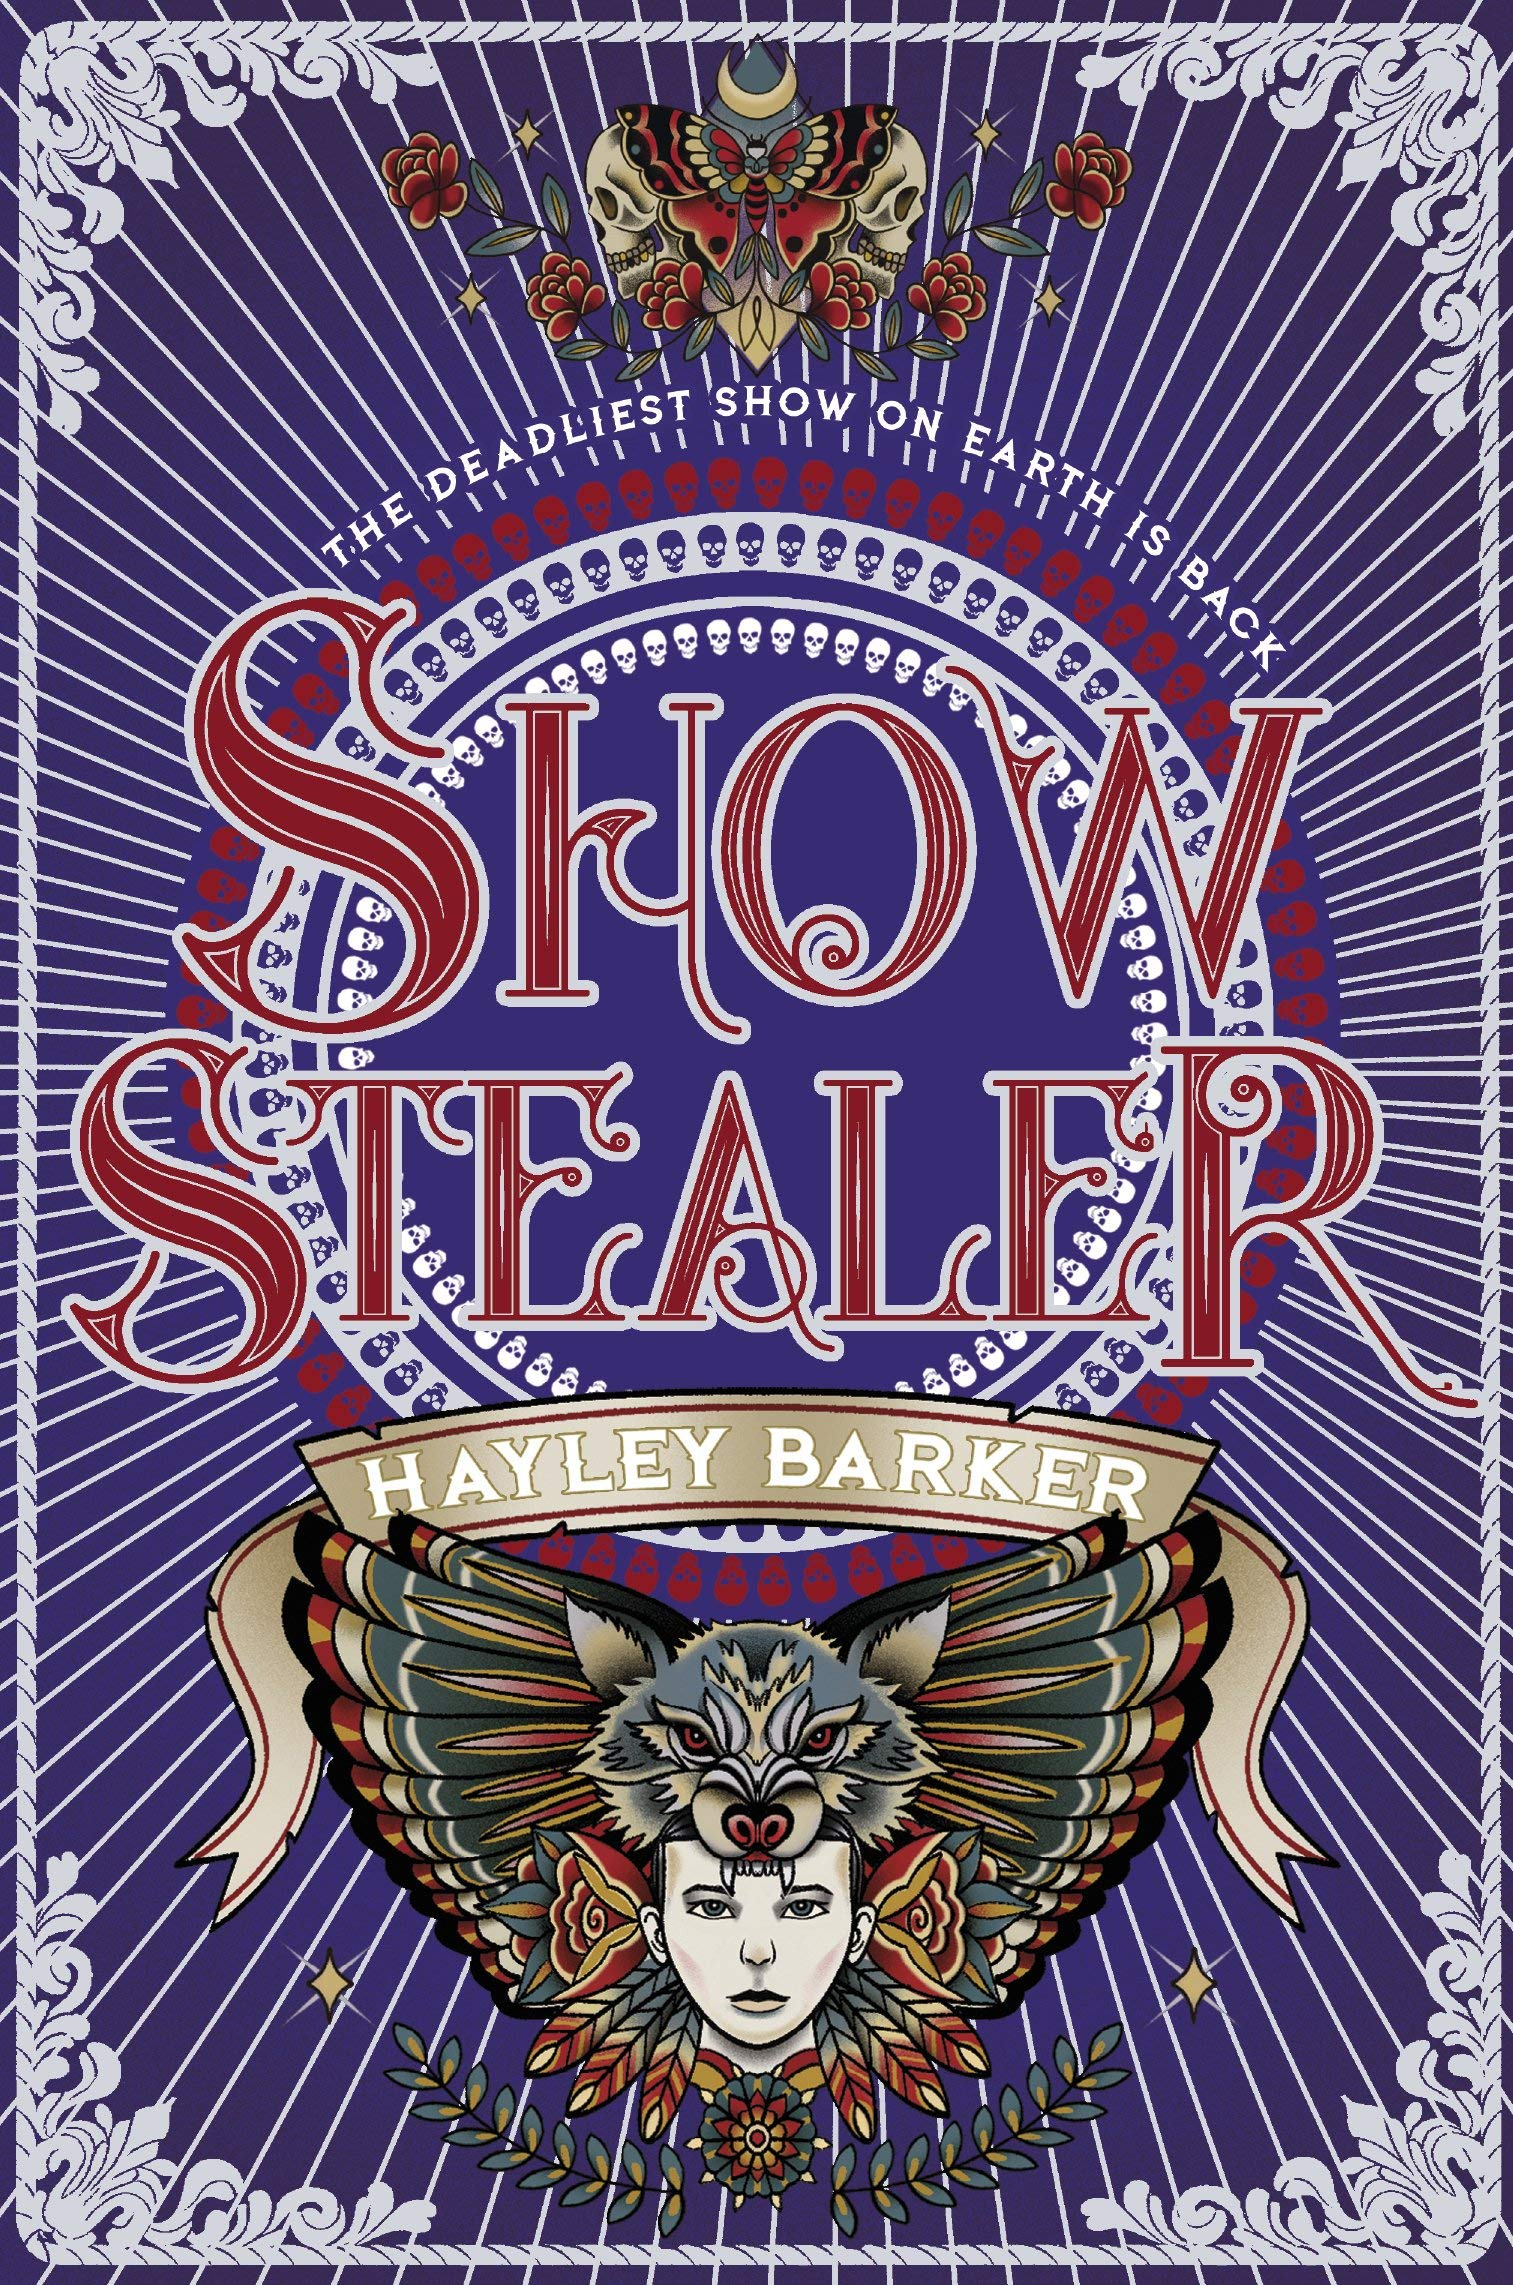 Show Stealer (Show Stopper 2): Amazon.co.uk: Barker, Hayley, Escobar,  Paola: Books